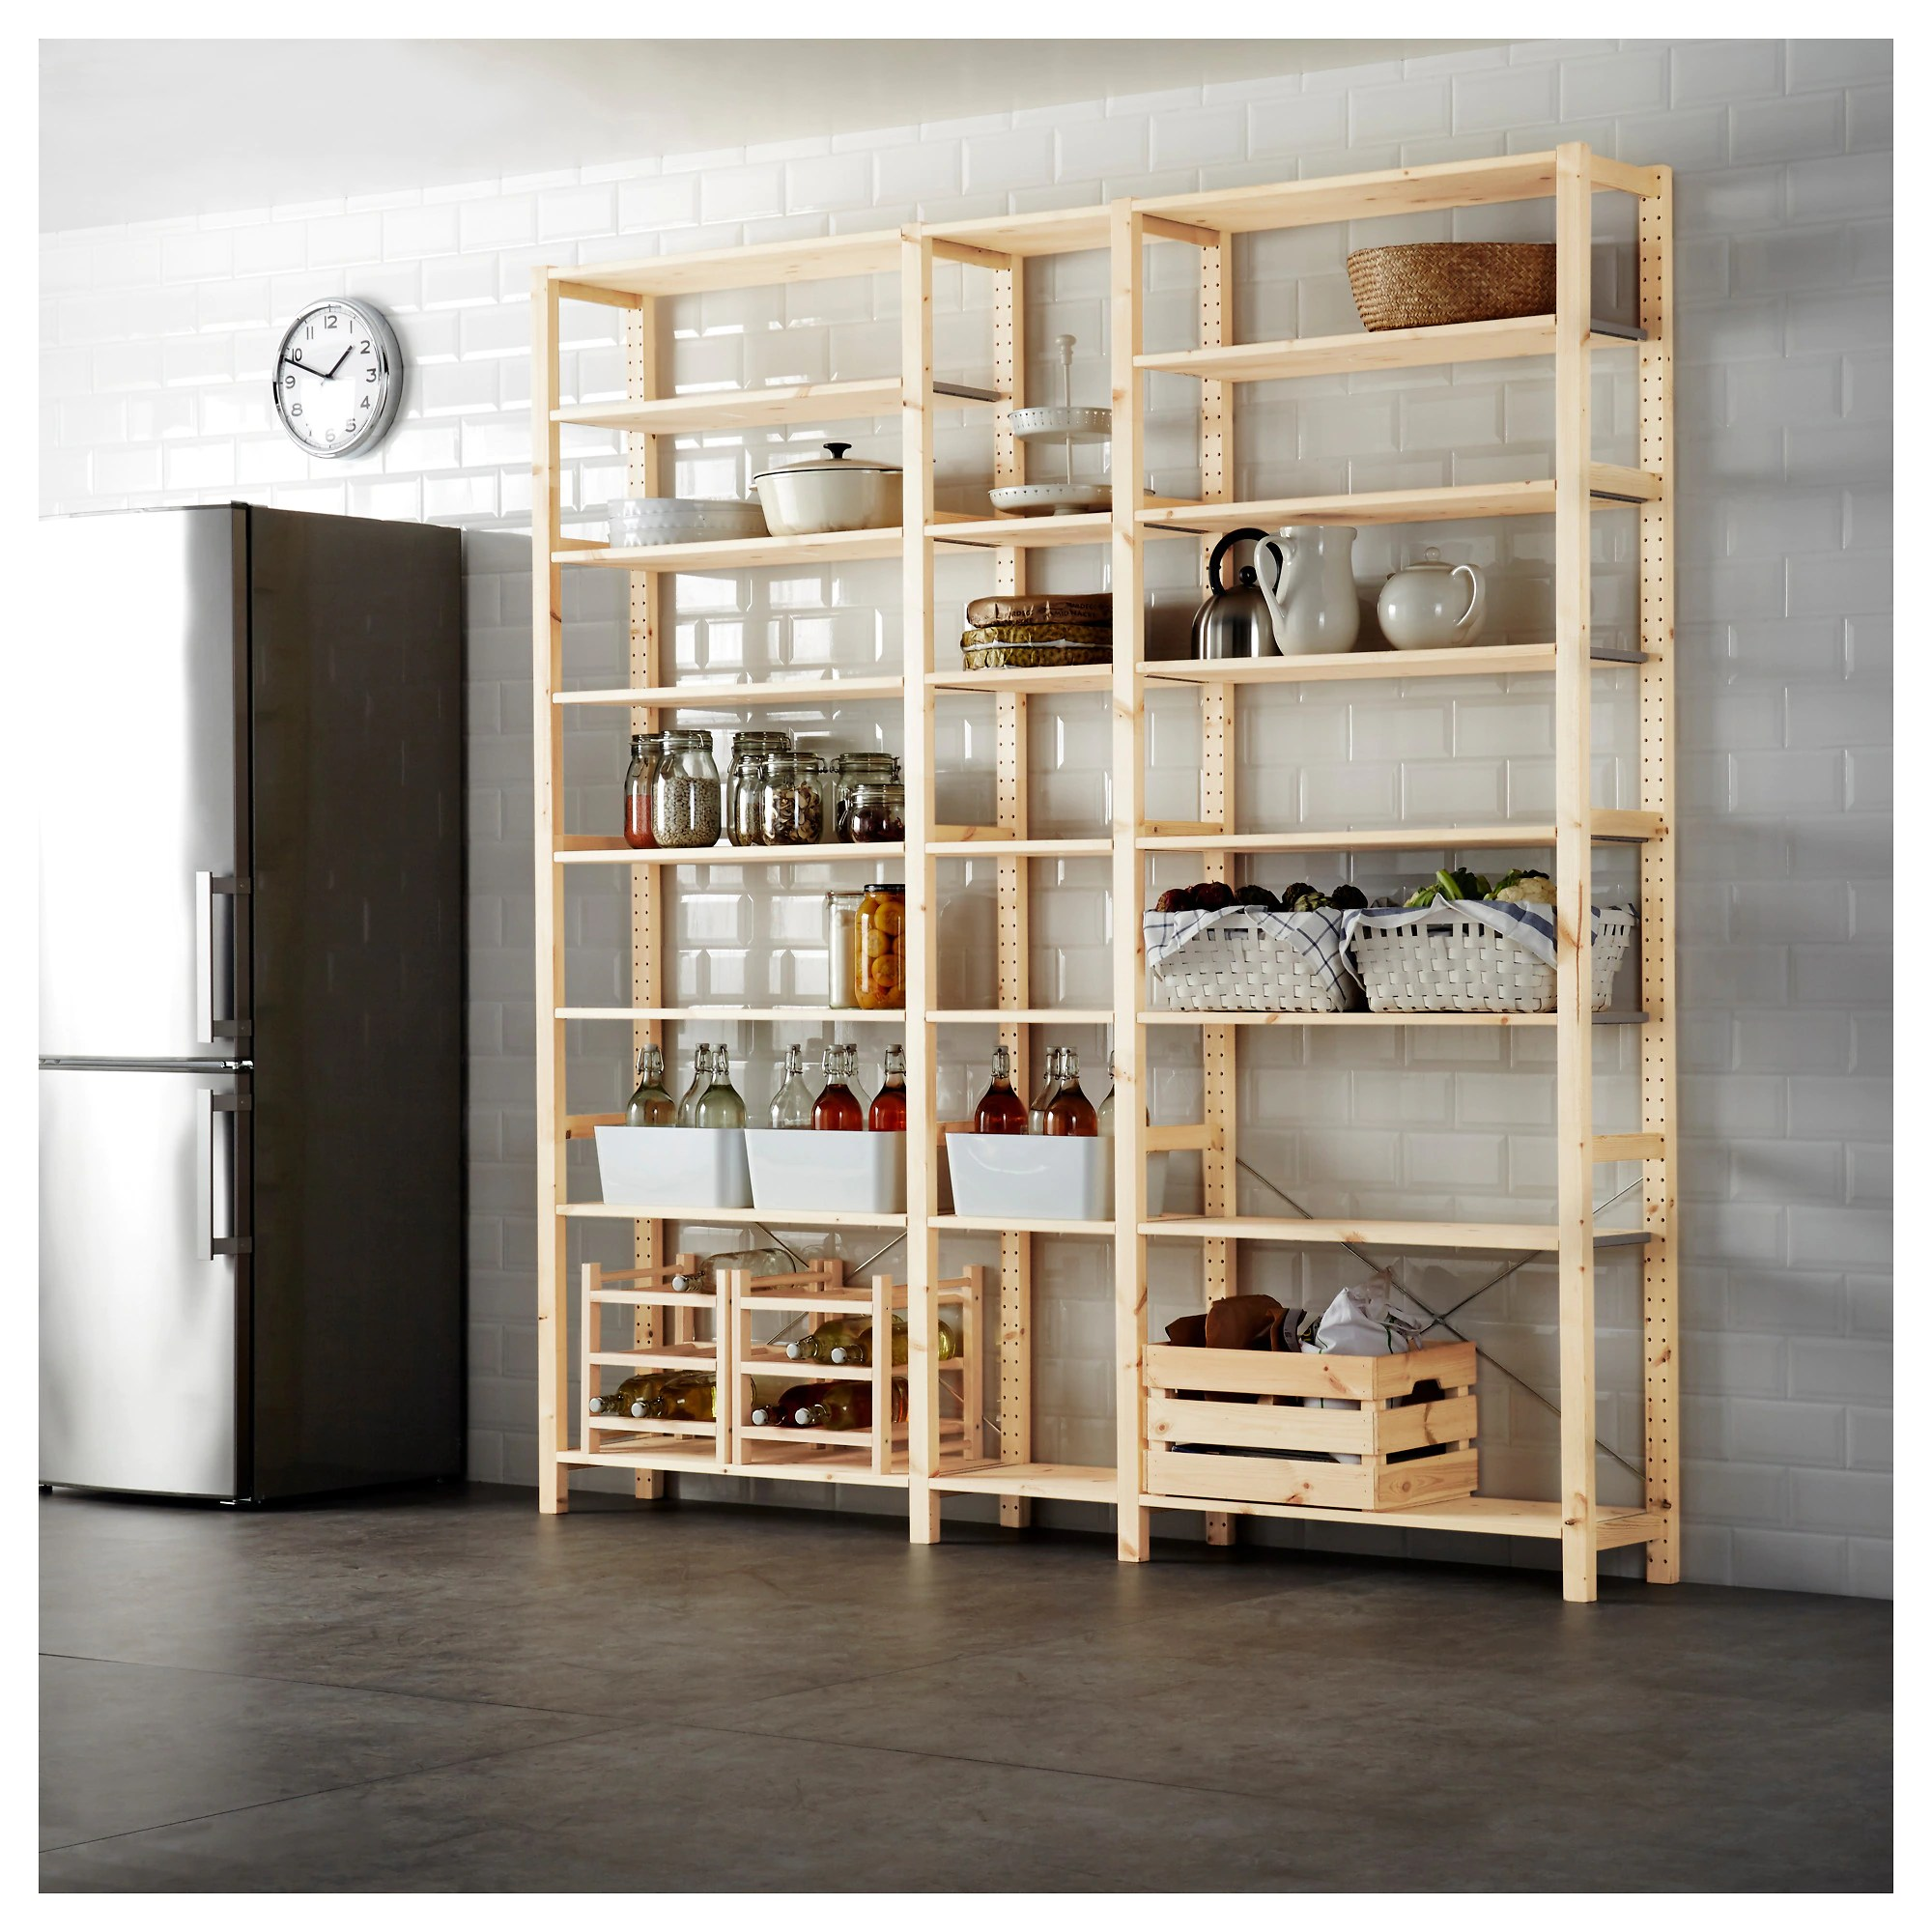 Ikea.de Ivar Ivar 3 Section Shelving Unit Pine